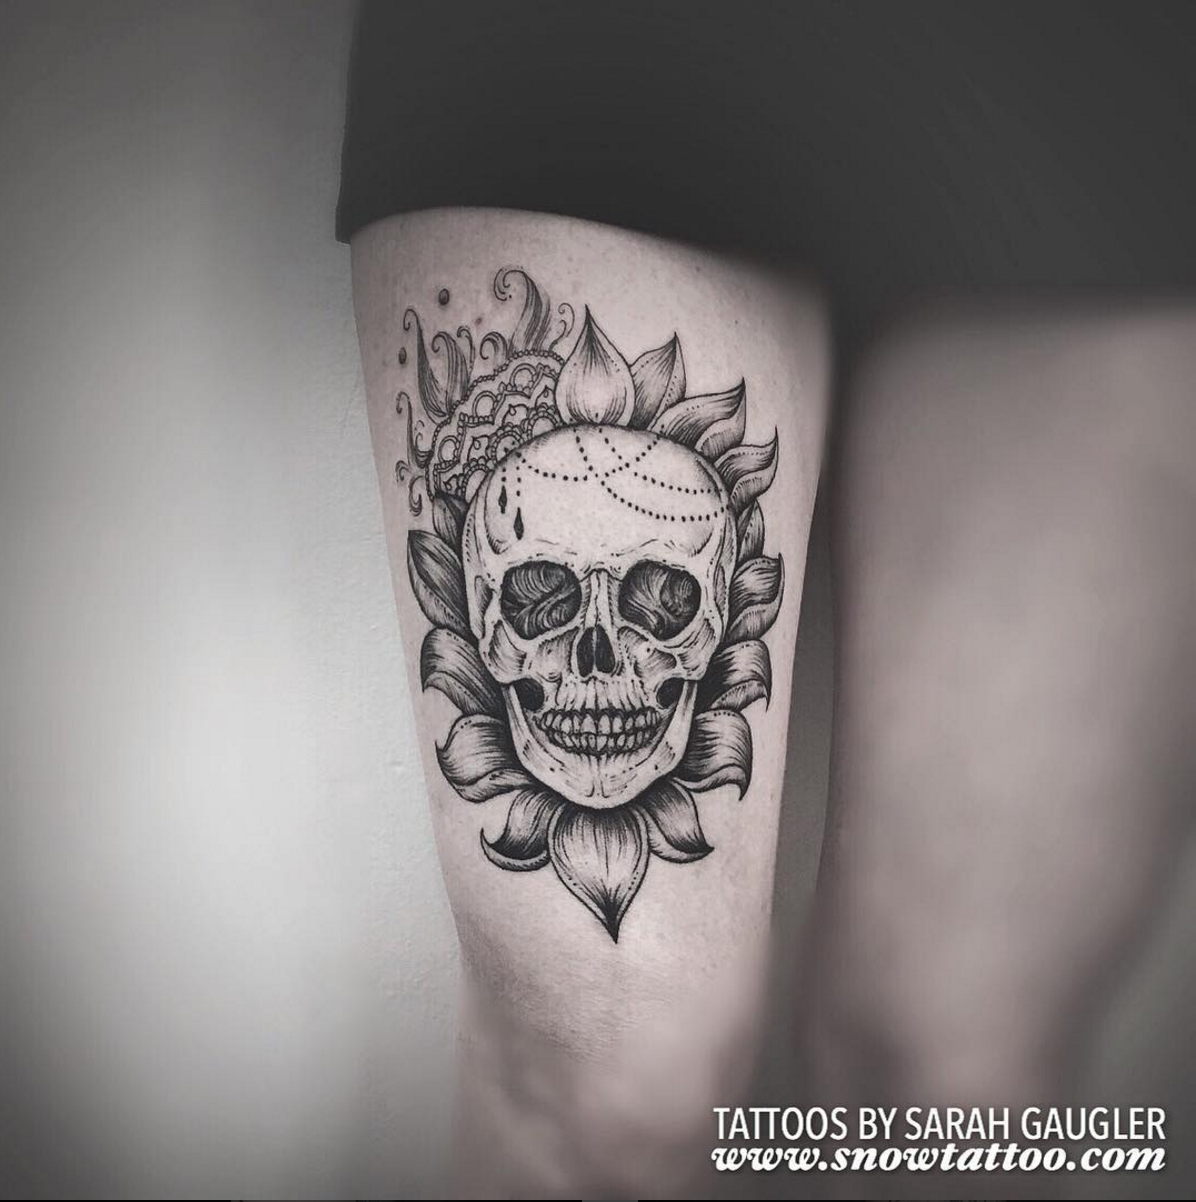 Sarah Gaugler Snow Tattoo Custom Skull FeminineTattoo FemaleTattooist DetailedTattoo Female Tattooist New York Best Tattoos Best Tattoo Artist NYC.png